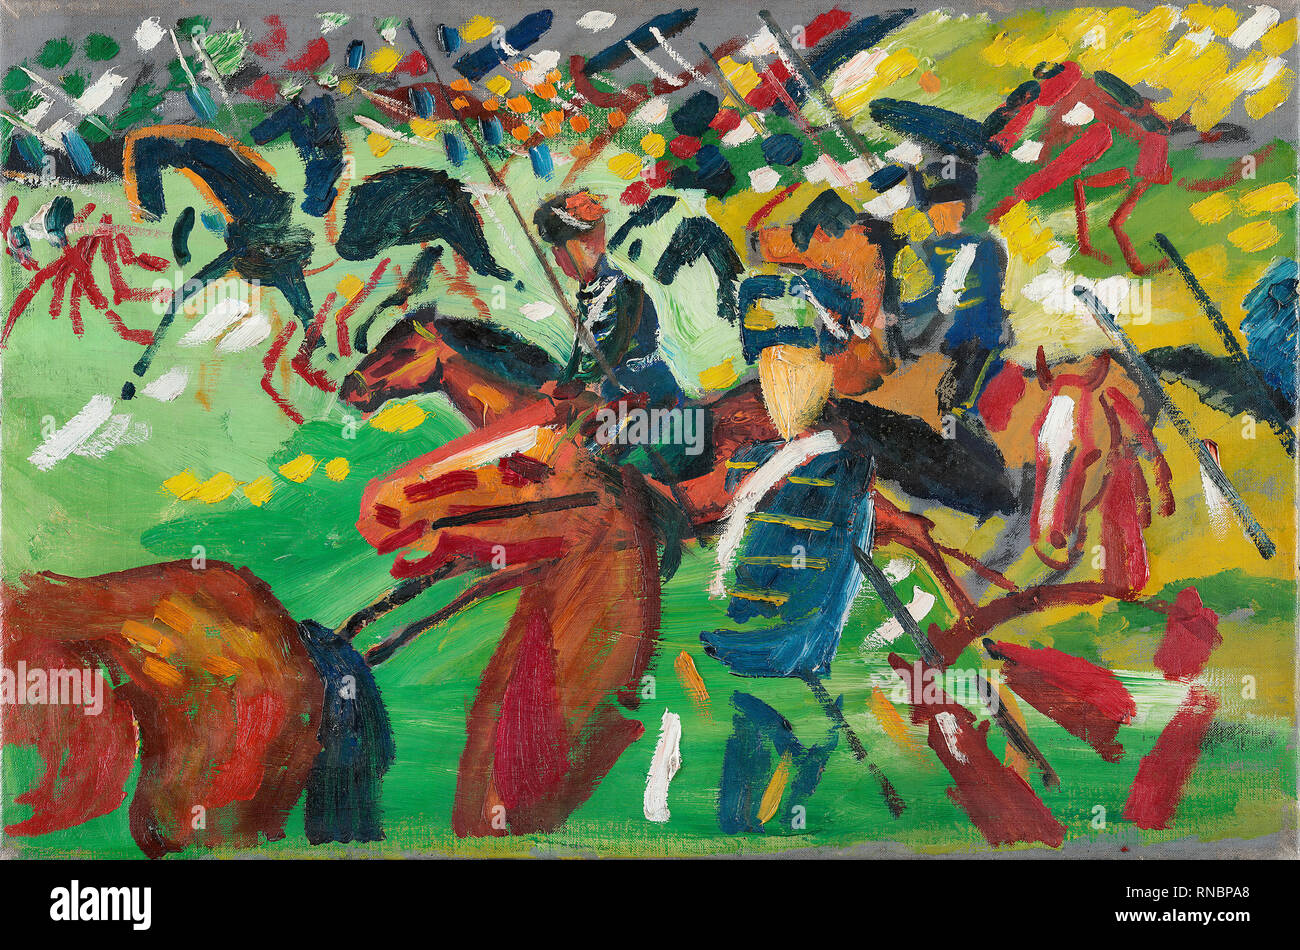 August Macke (Meschede, 1887-Perthes-les-Hurlus, 1914). Hussars on a Sortie (1913). Oil on canvas. 37.5 x 56.1 cm. Museum: Museo Nacional Thyssen-Bornemisza, Madrid. - Stock Image